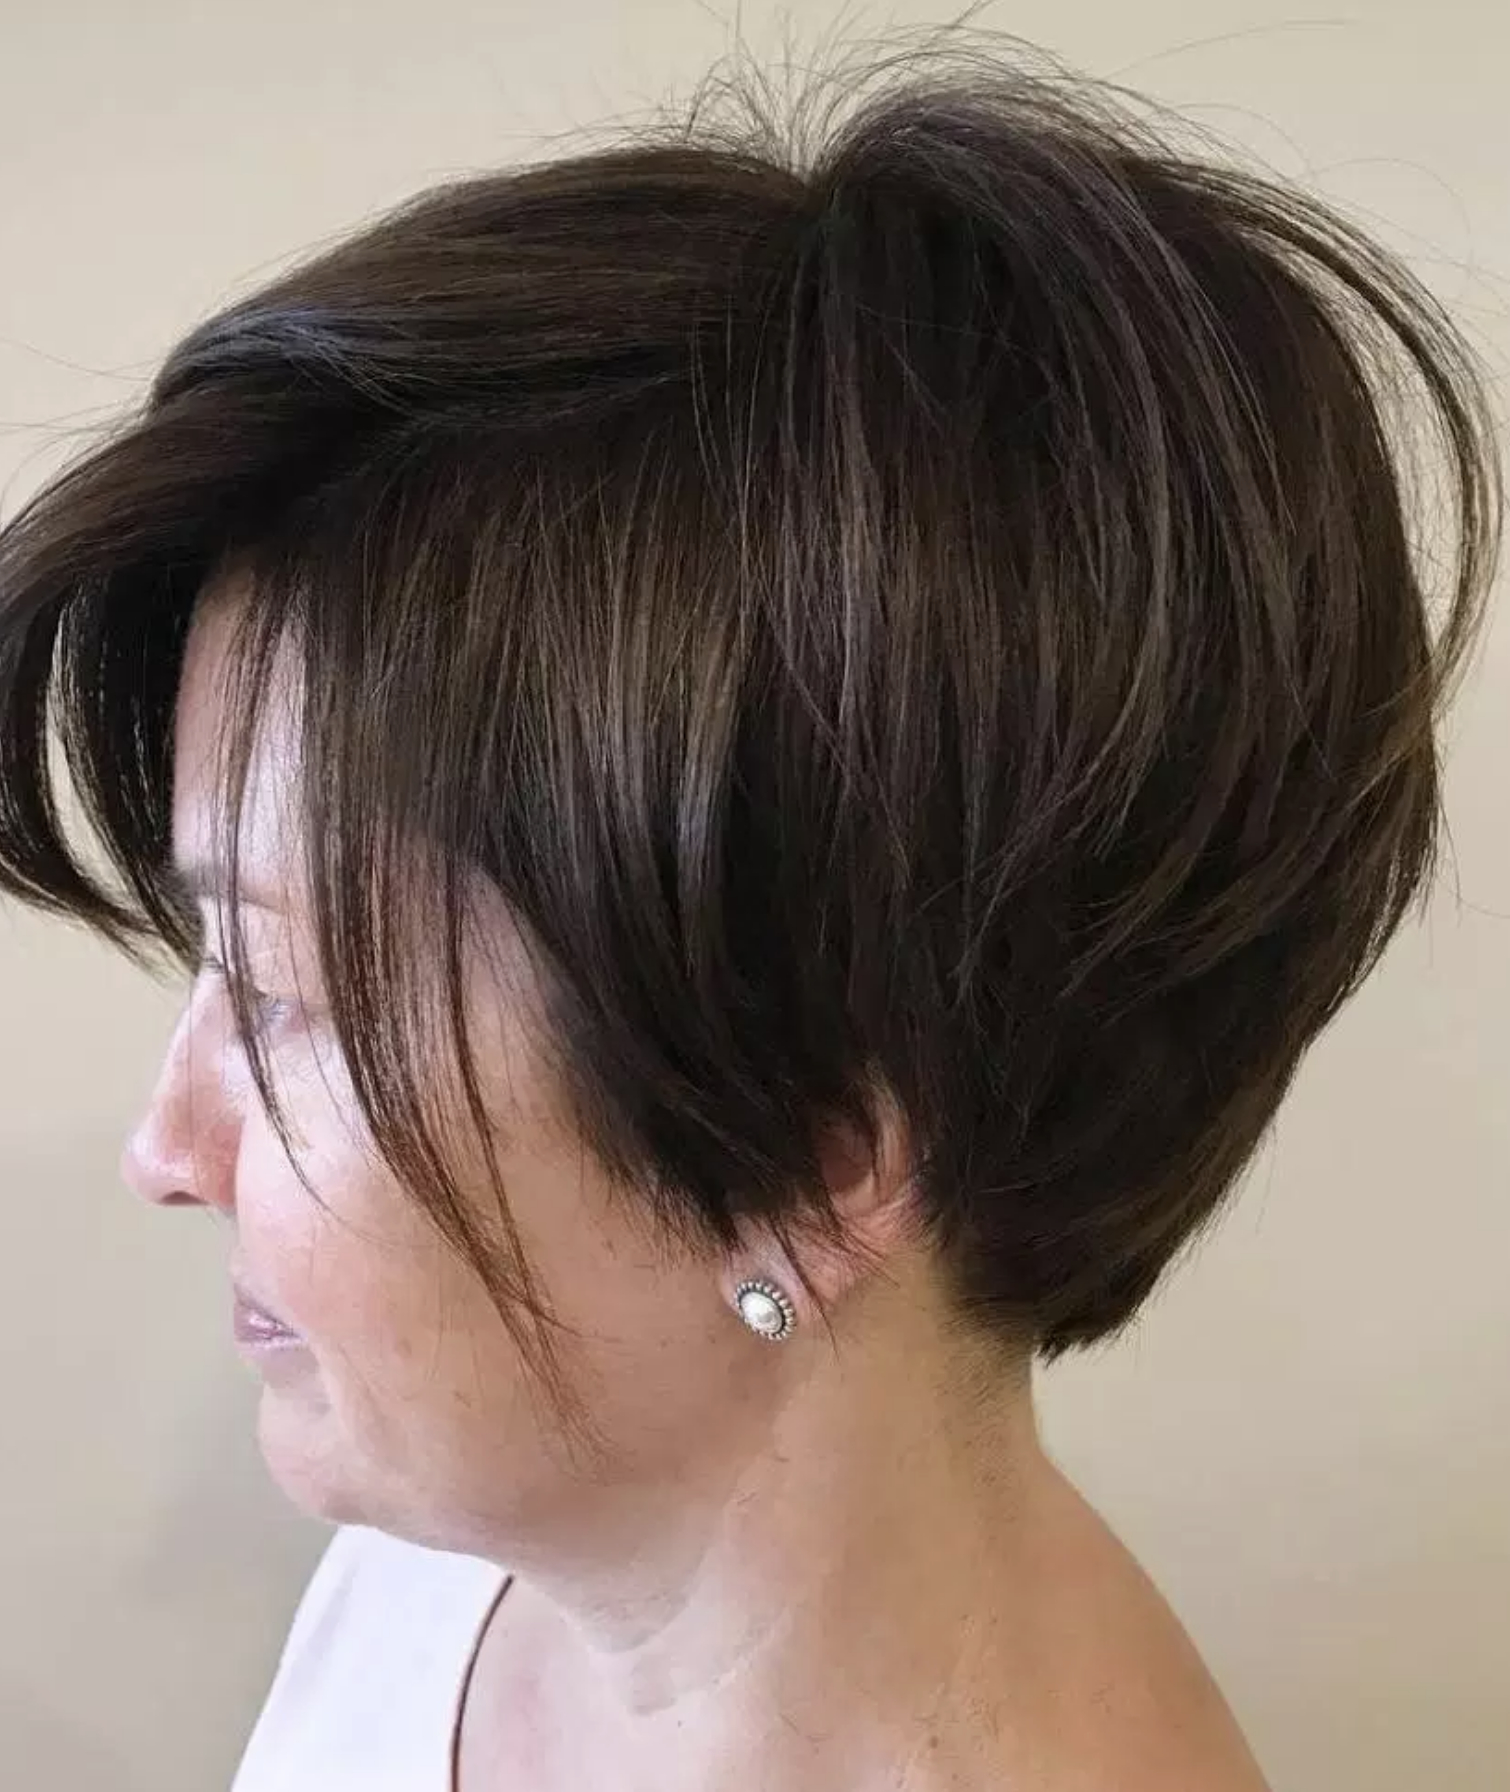 Short Hairstyles For Women Over 40 Many Women In Their 40S Opt For Throughout Short Haircuts For Women In Their 40S (View 23 of 25)